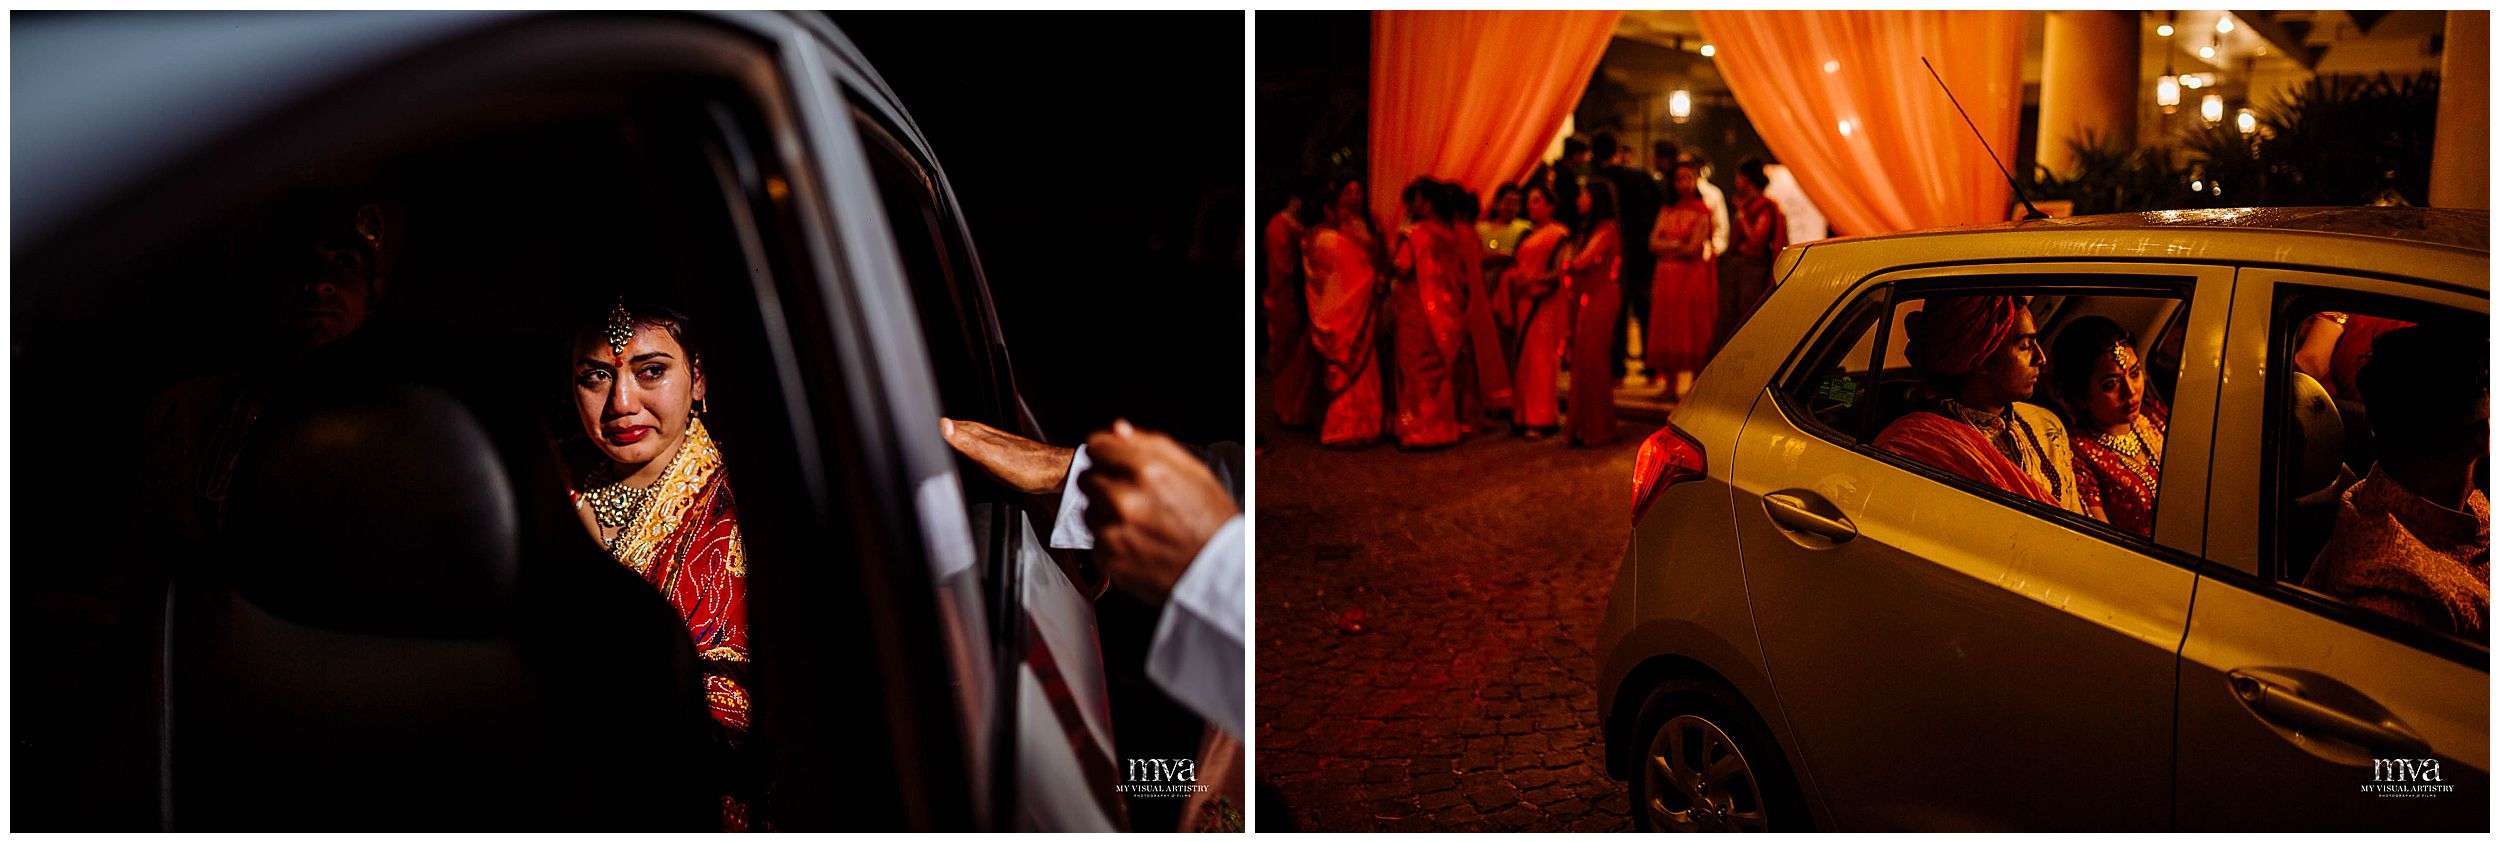 ROHIT_SANIYA_MYVISUALARTISTRY__WEDDING_PHOTOGRAPHER_GOA_DESTINATION_CAREVELA_RESORT_0030.jpg